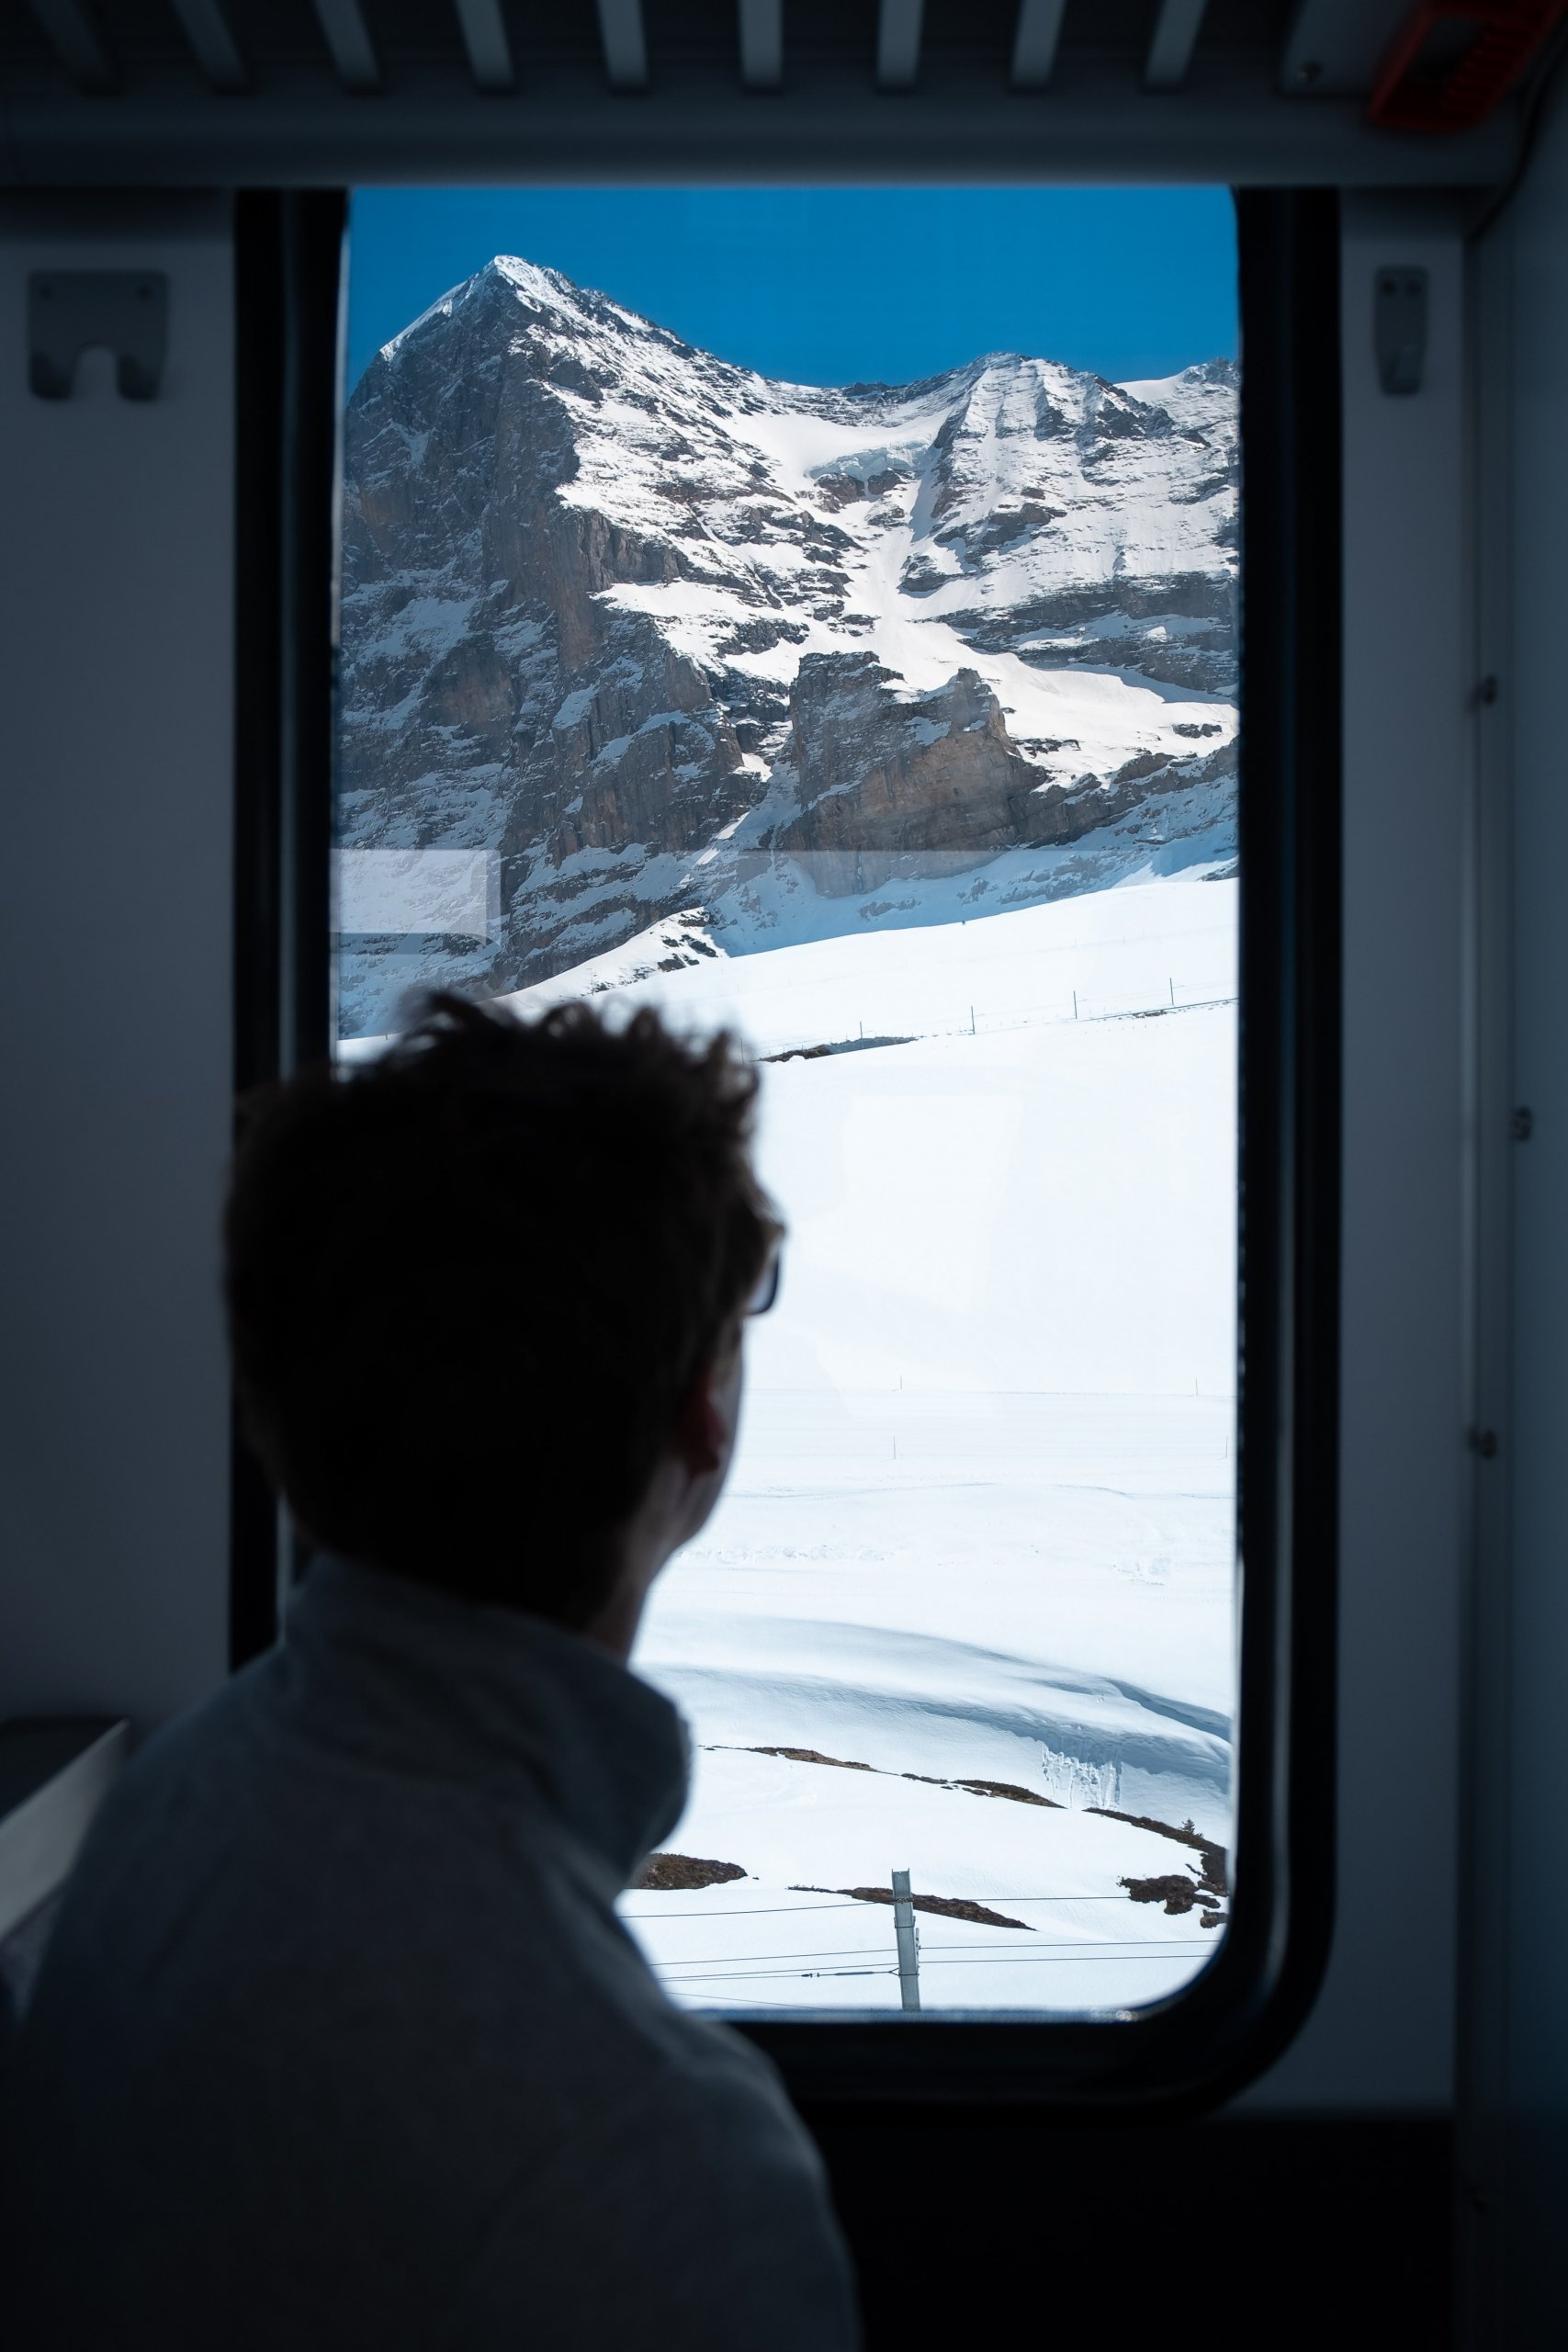 Passenger looking out window on a Swiss train